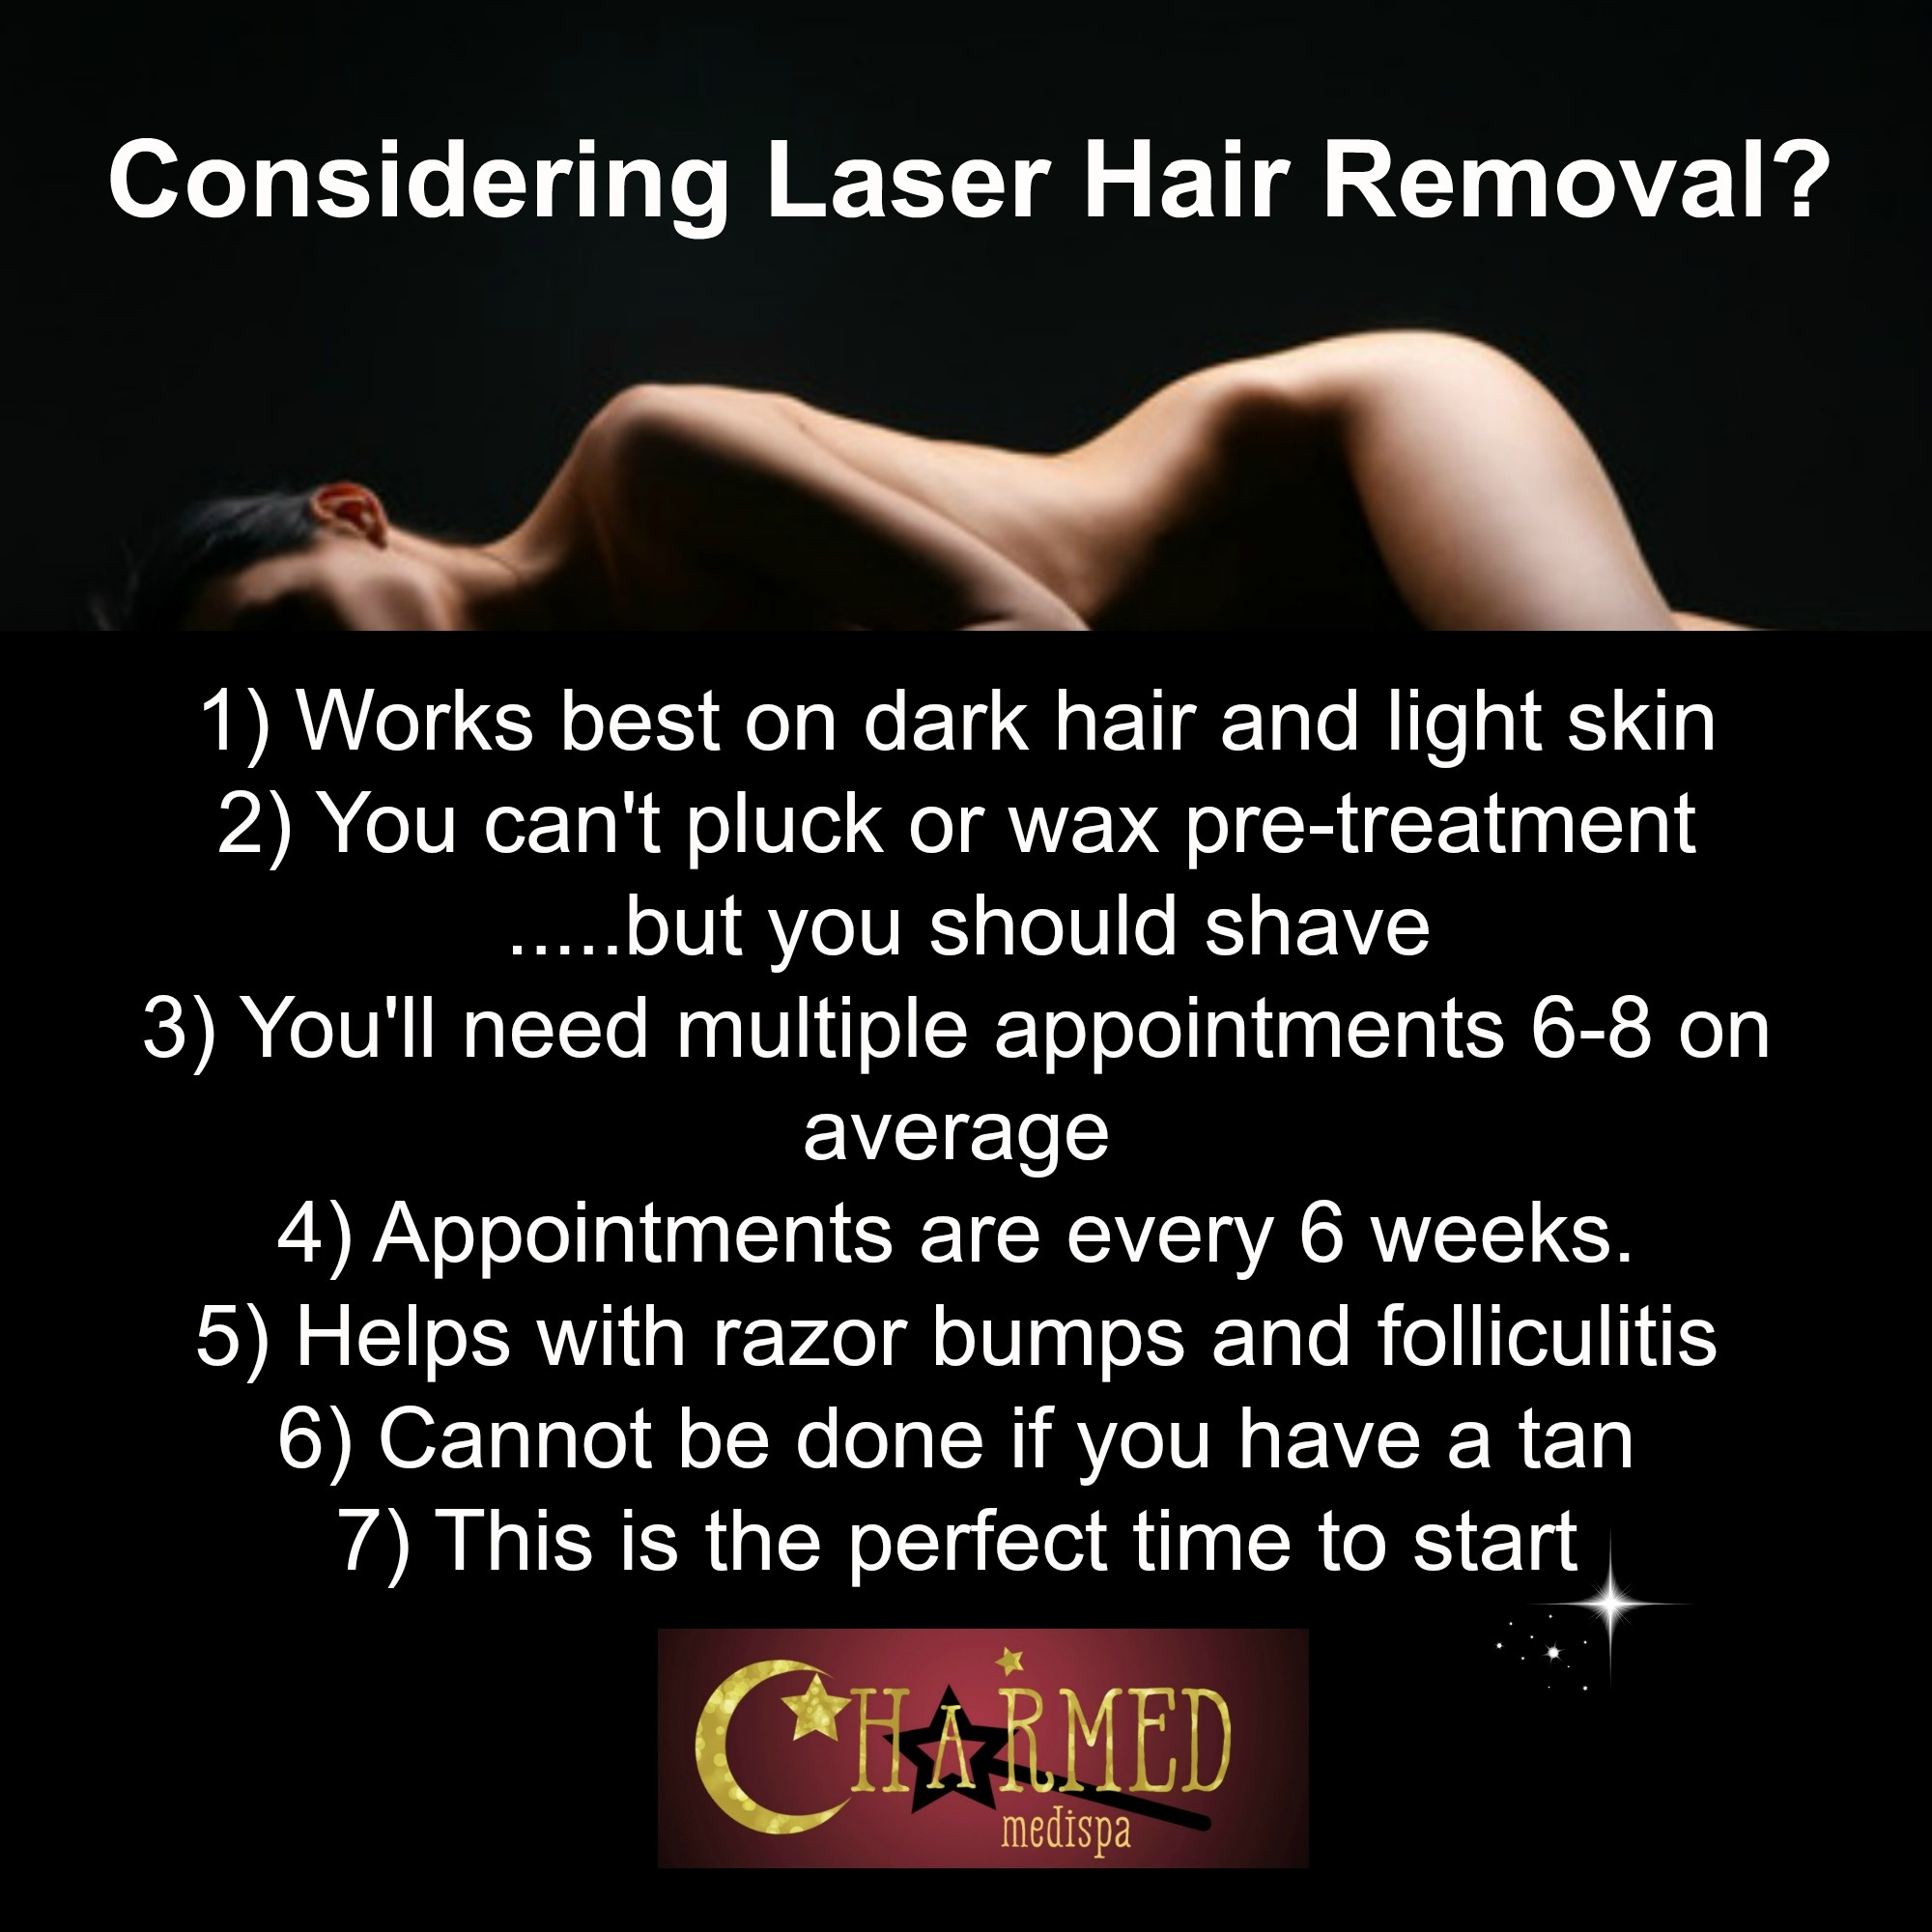 Laser hair removal charmed medispa core details about laser hair removal solutioingenieria Choice Image